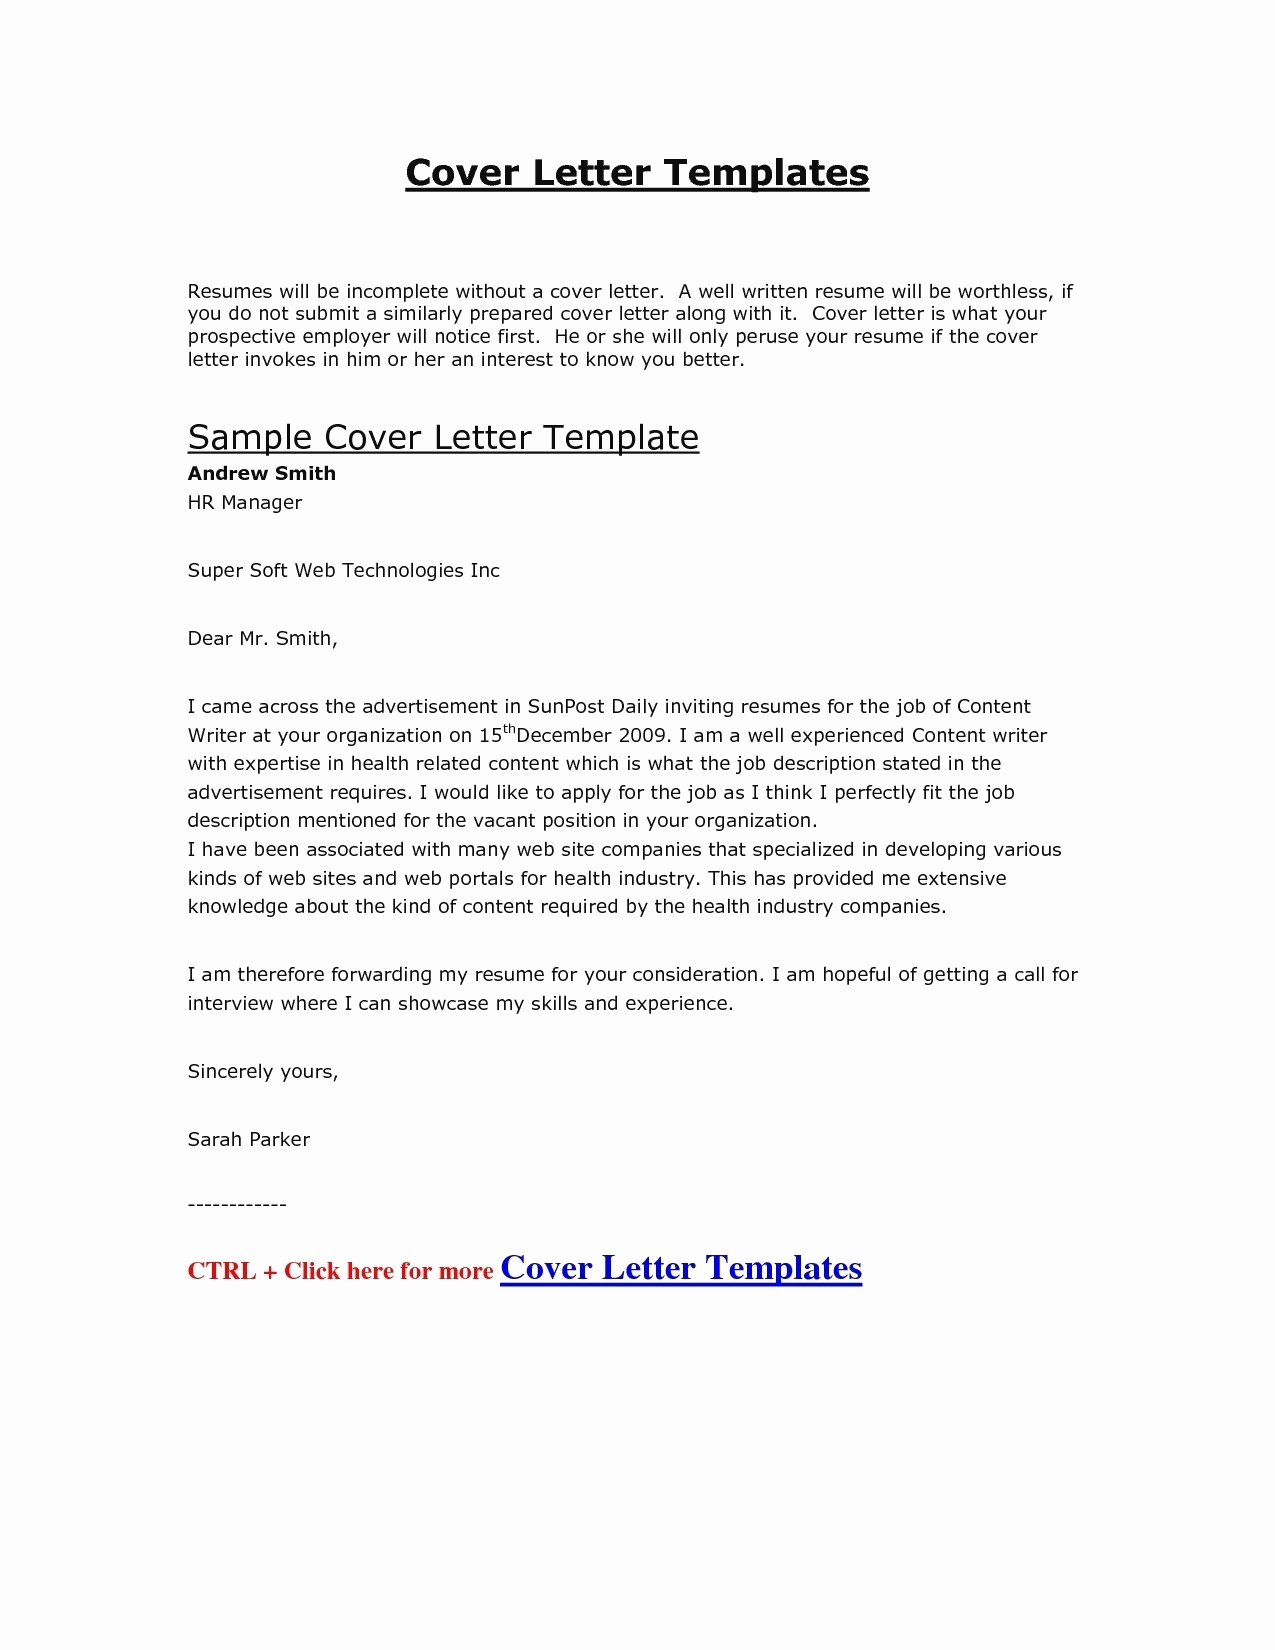 Sample Cover Letter Template for Job Application - Good Cover Letter Examples Inspirational Job Application format